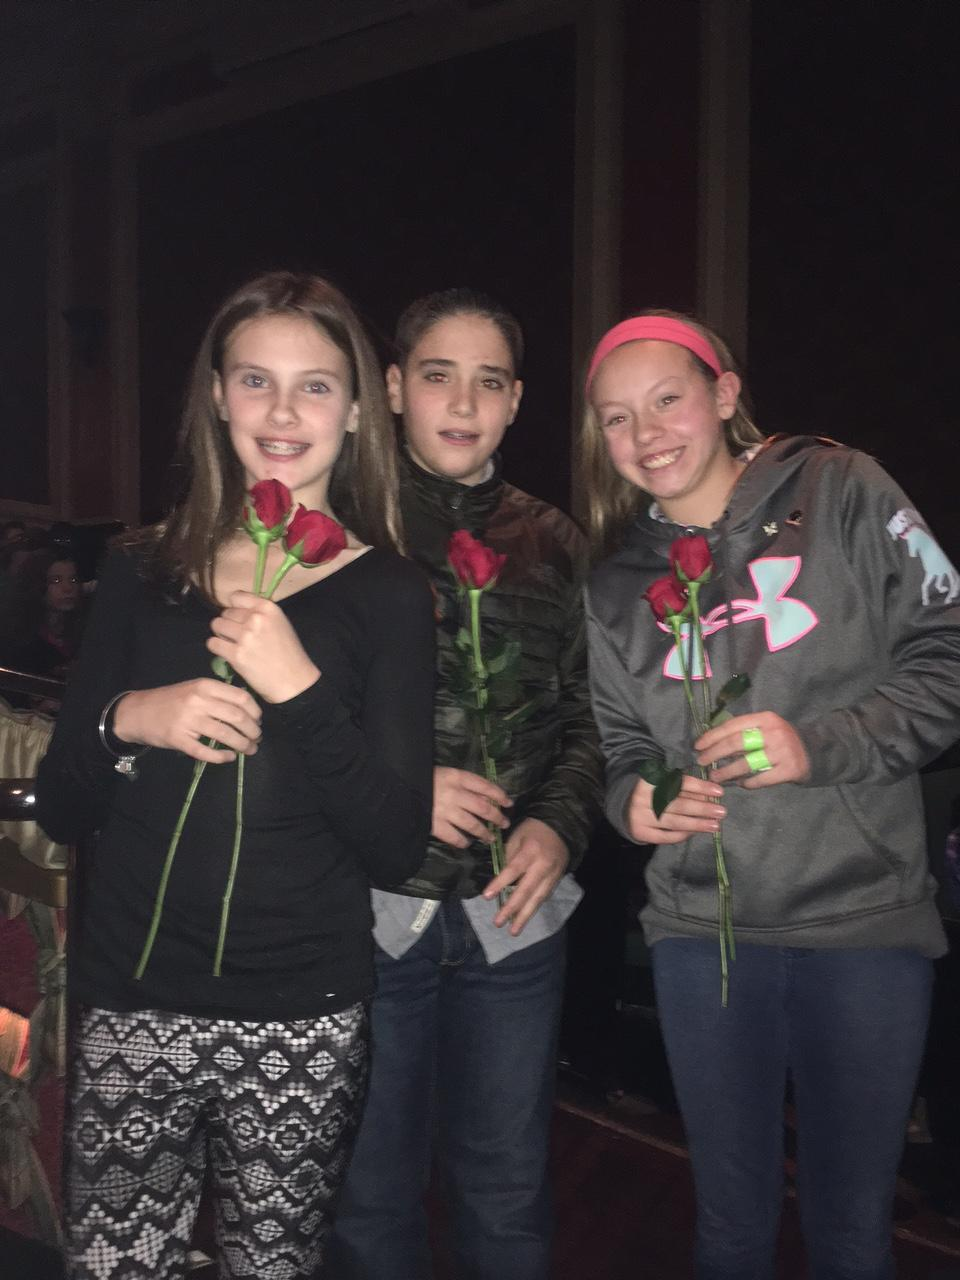 Caleigh Morrow, Michael Glynn, and Brooke Keen present roses to the actors.